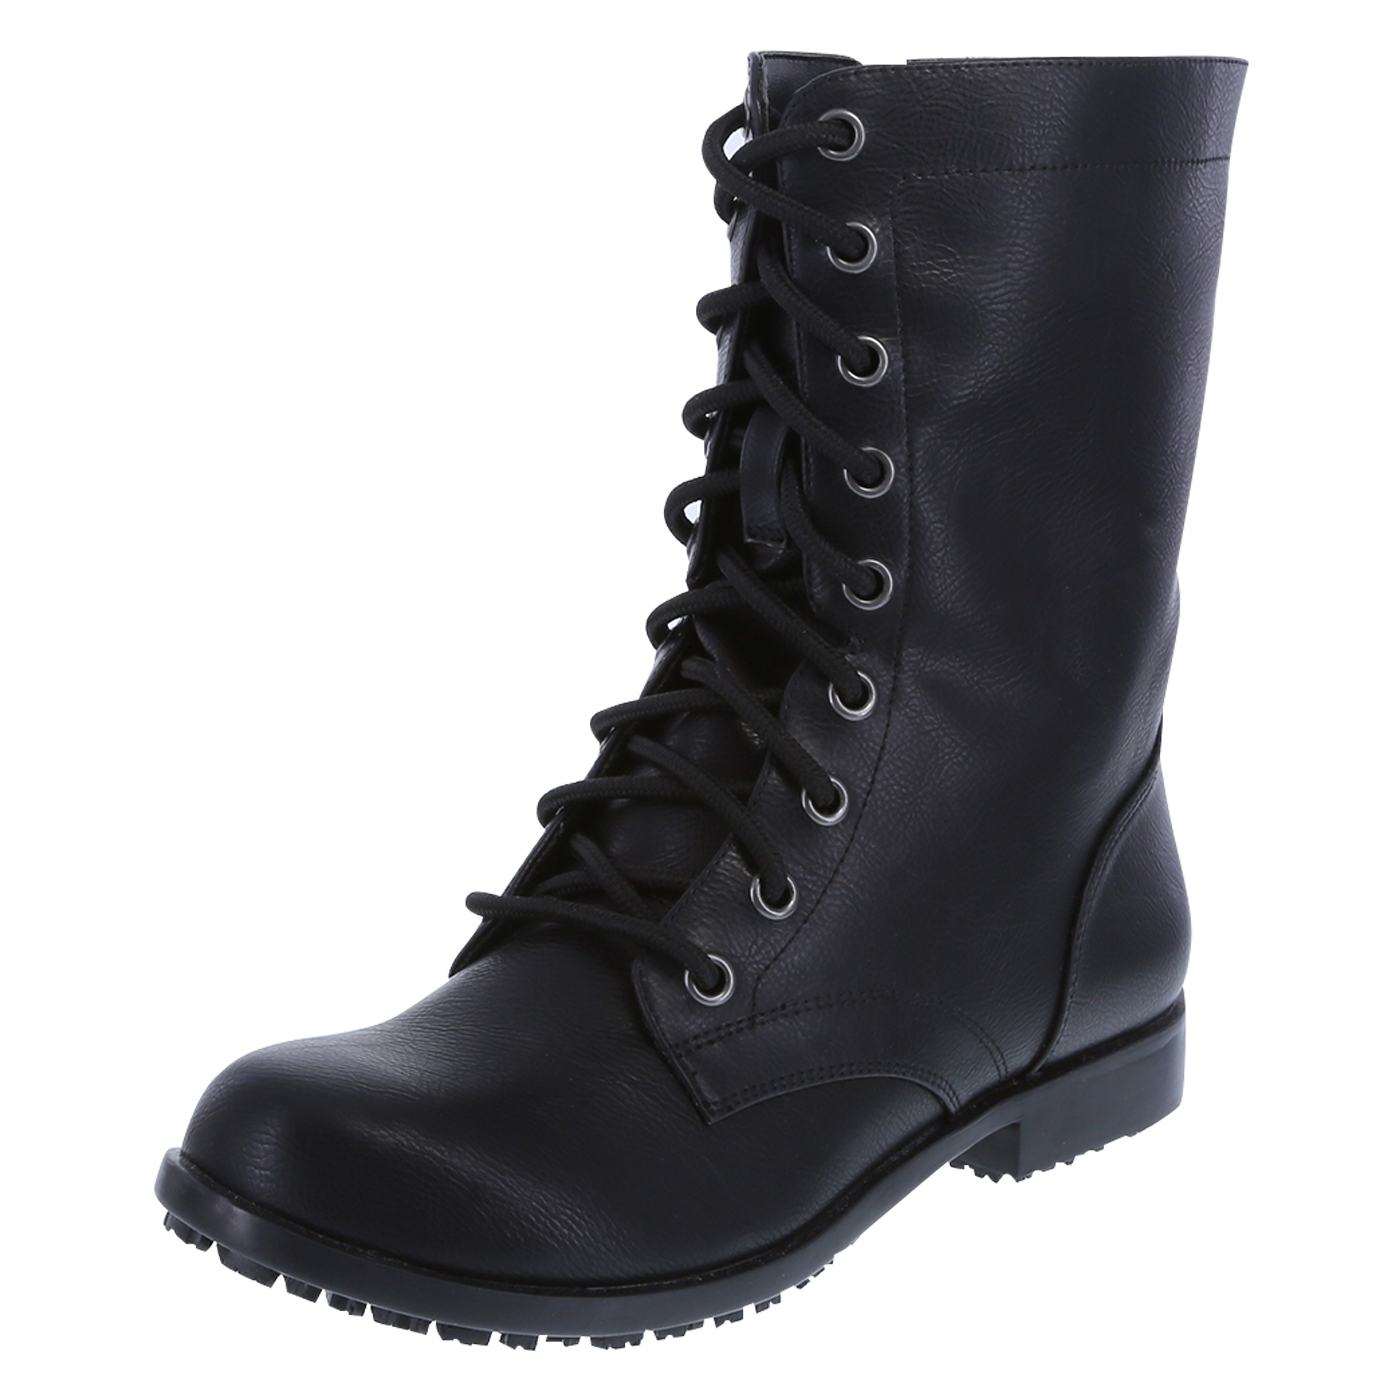 boots women womenu0027s slip resistant brooke lace-up with zipper boot, black, hi-res TQOFFYI